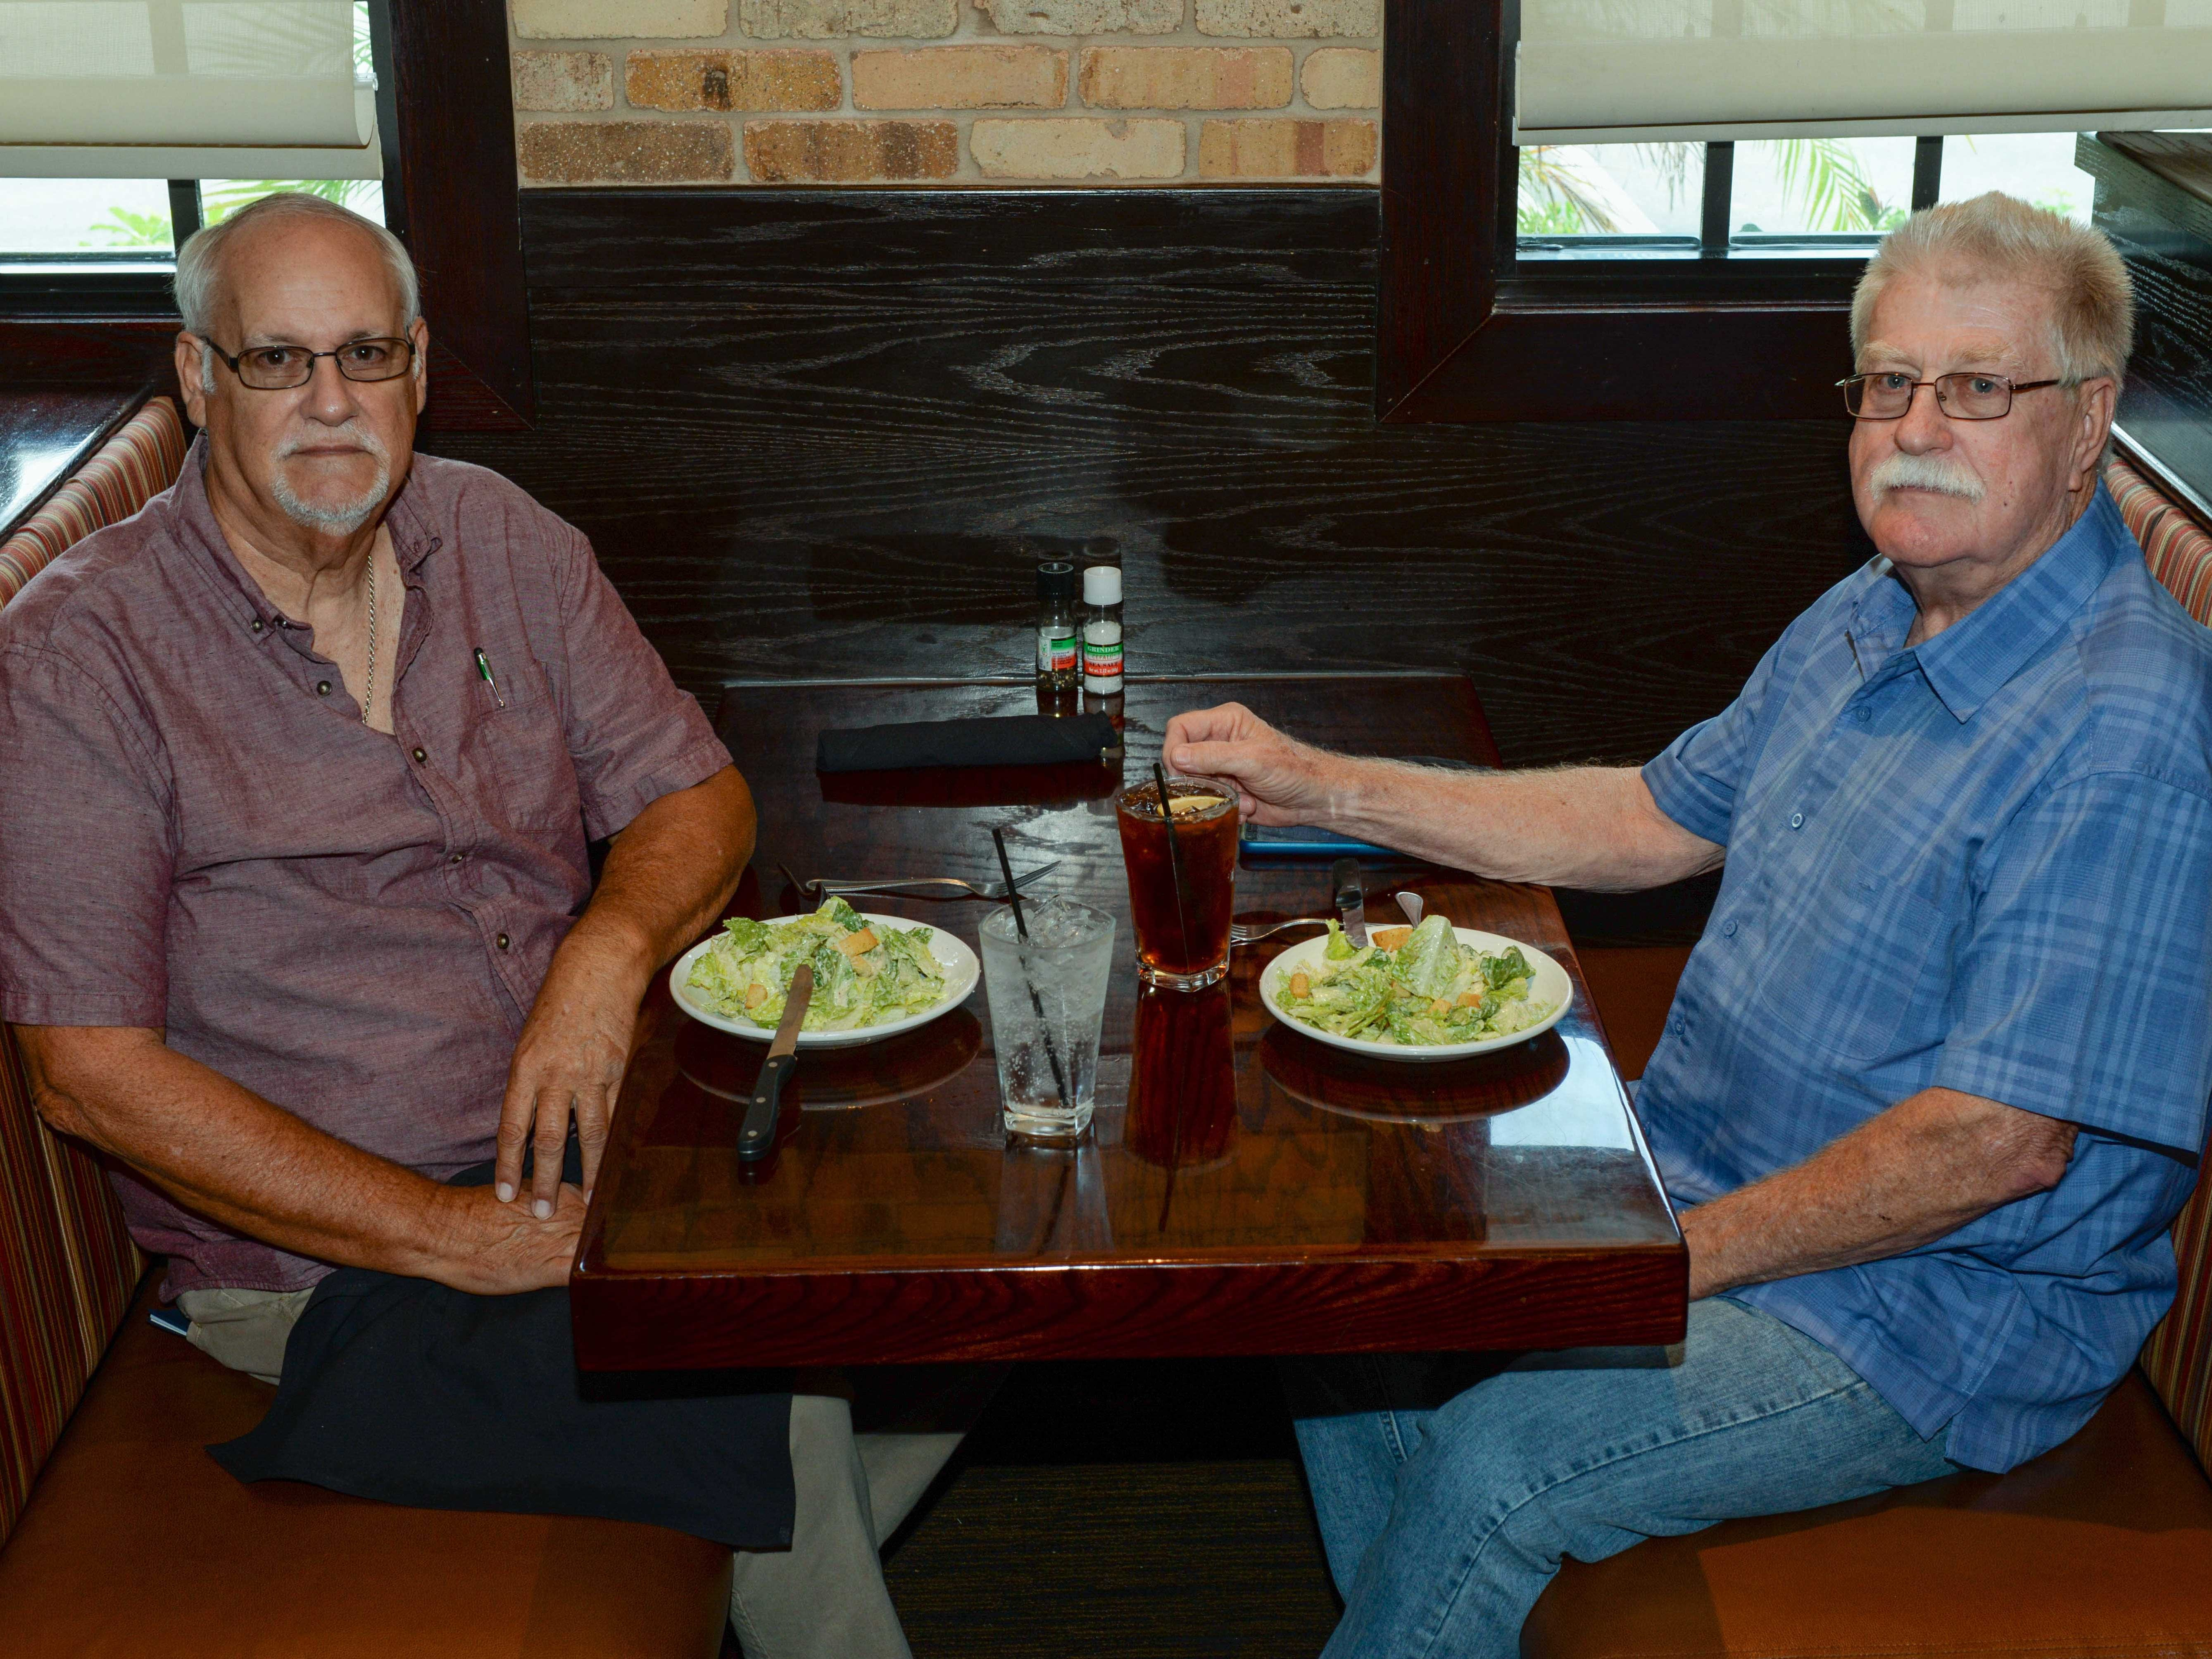 American Legion members Mike Cardenas, left, and Jim Burk at Carrabba's Italian Grill in St. Lucie West.